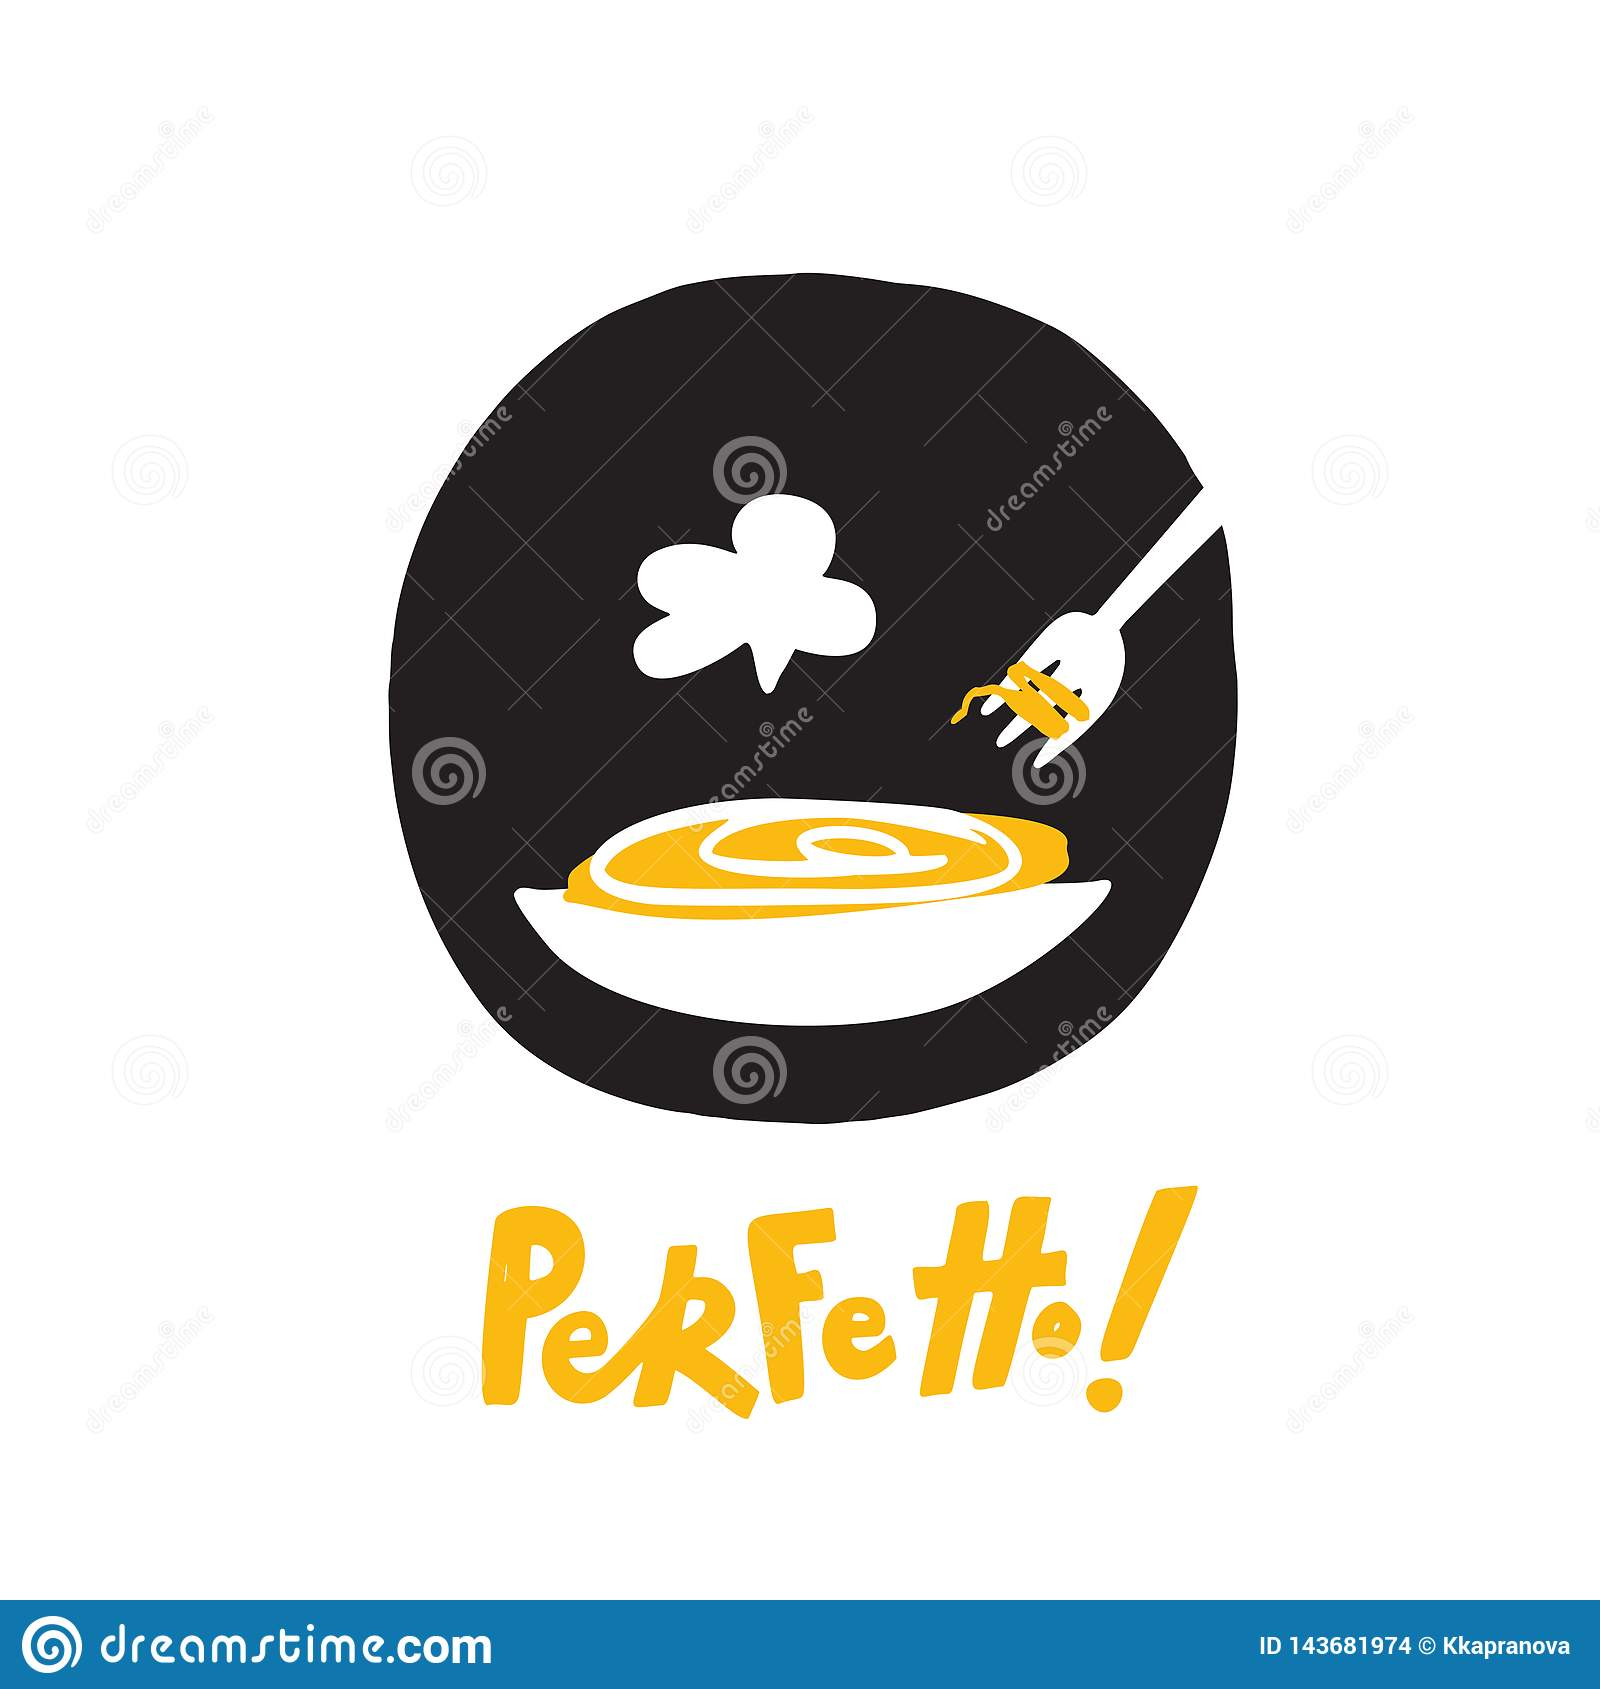 Perfect in italian Perfetto. Funny hand drawn illustration of plate with spaghetti and fork. Vector design